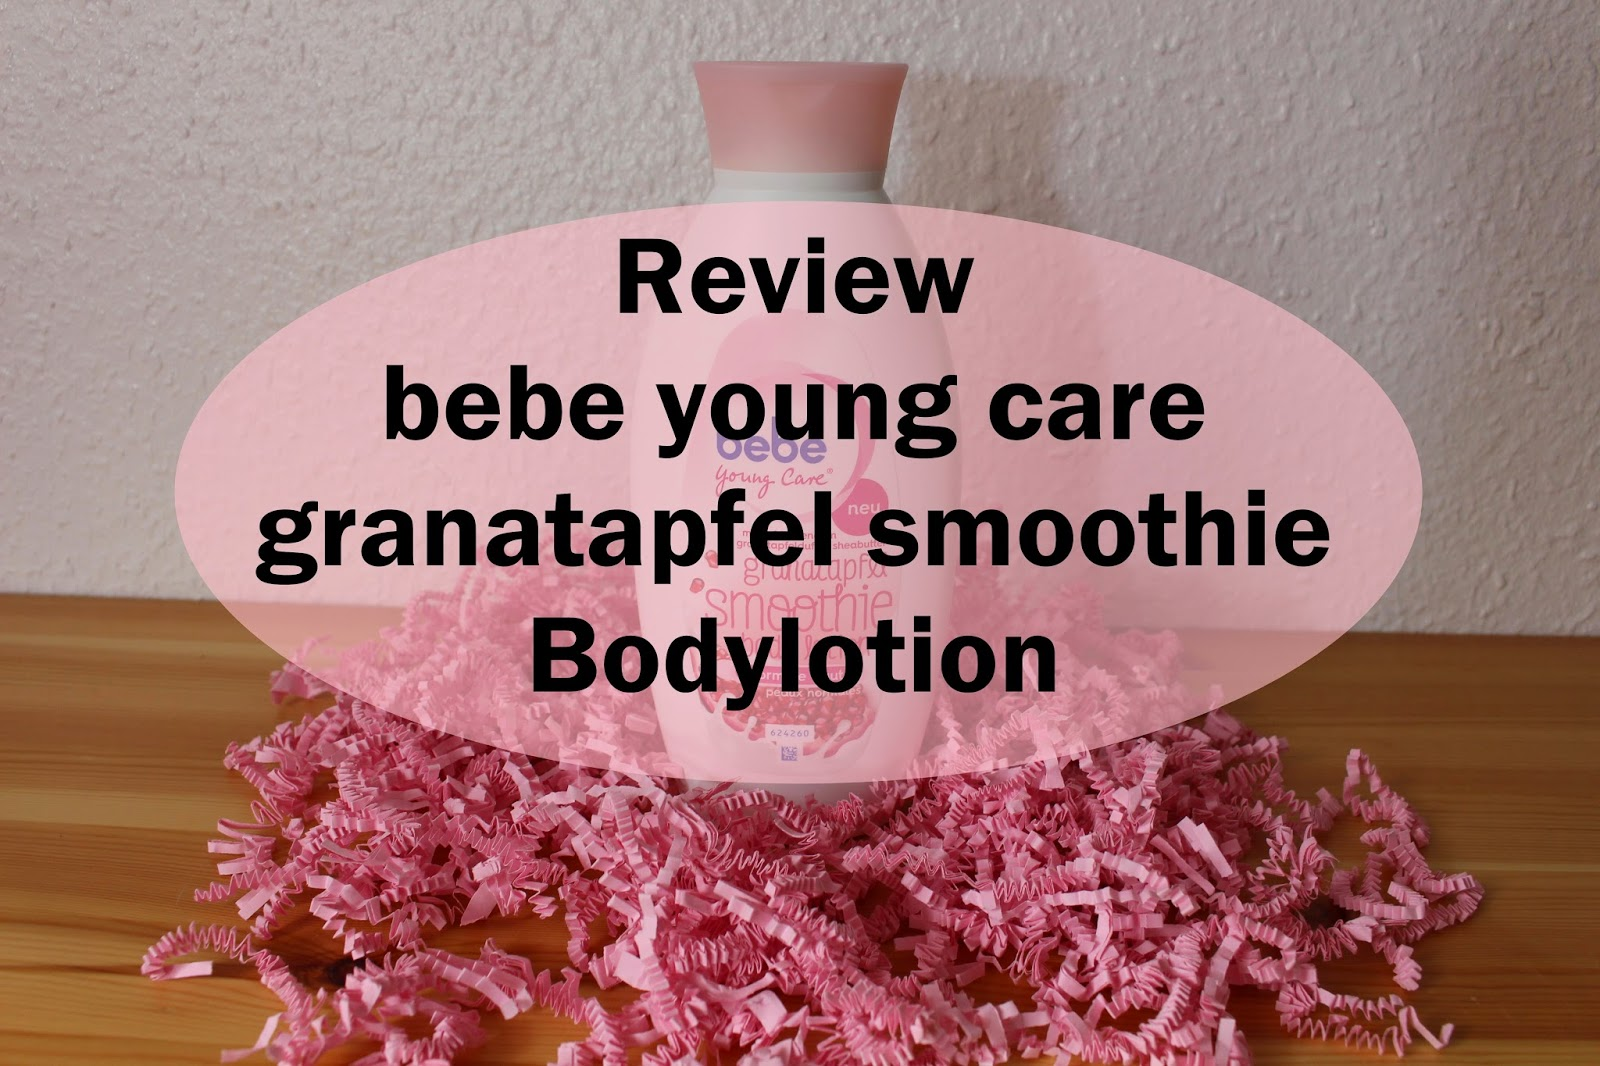 bebe young care Granatapfel Smoothie Bodylotion